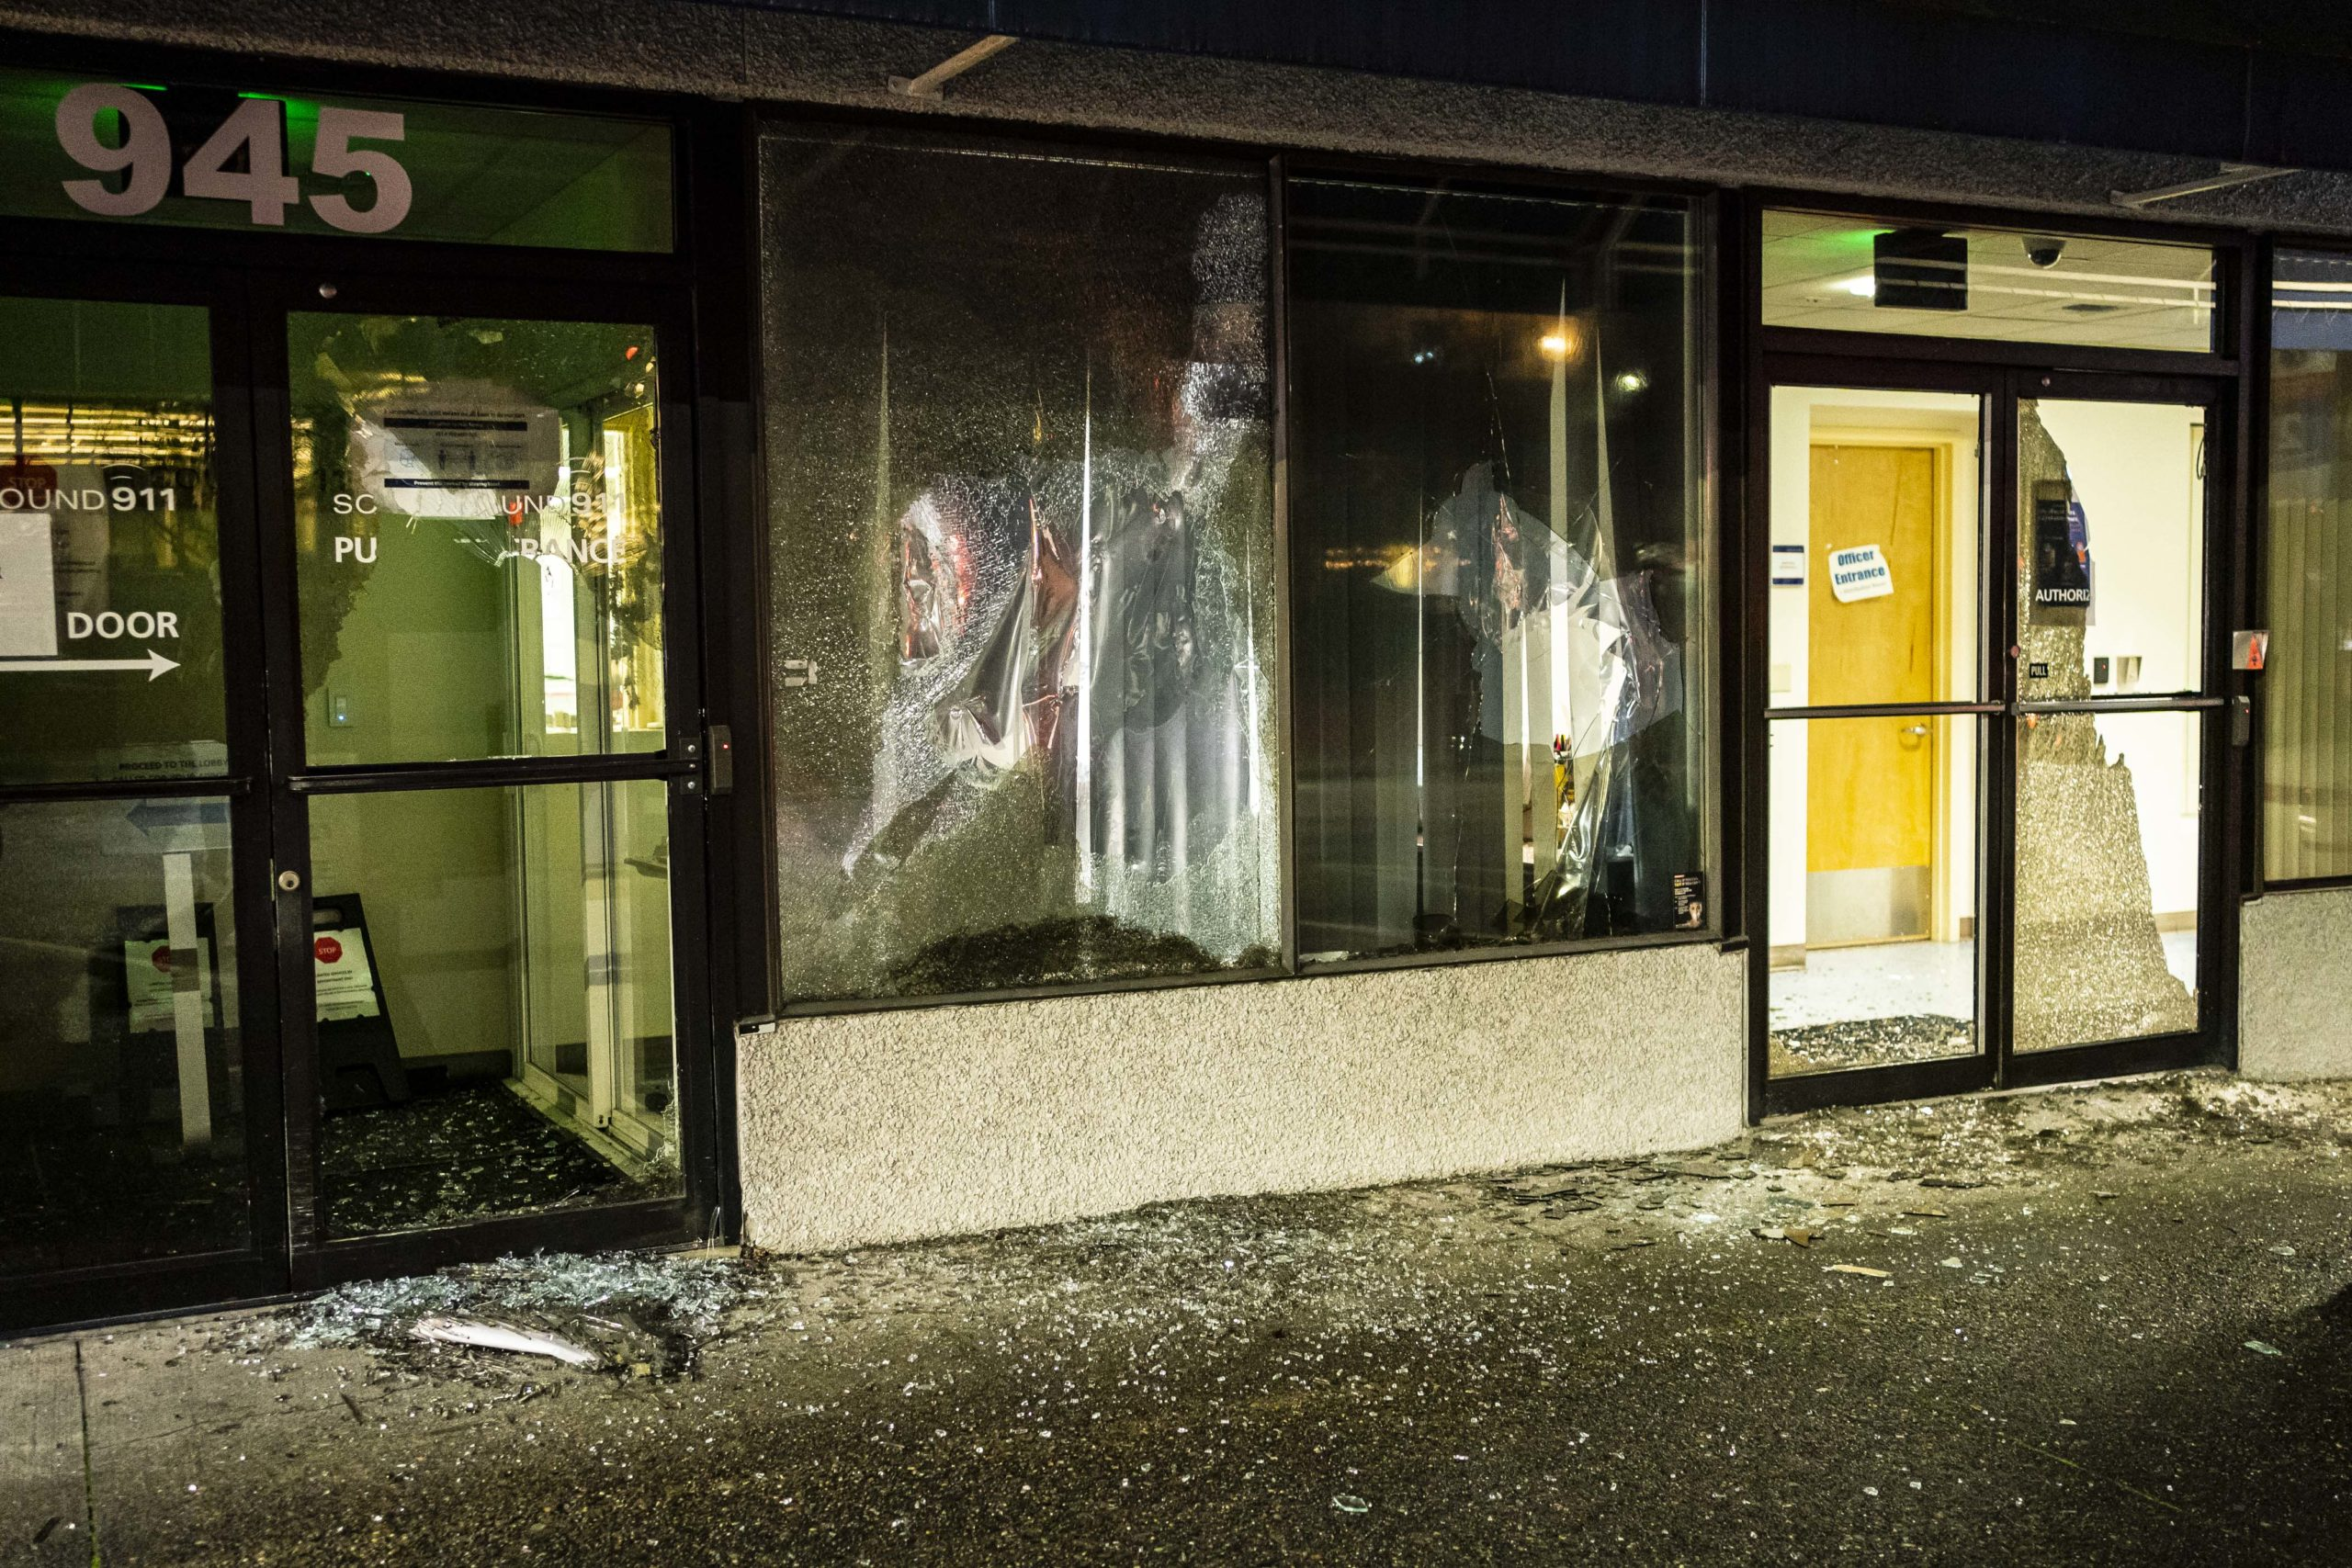 TACOMA, WA - JANUARY 24: Broken windows are seen at South Sound 911 during an anti-police protest on January 24, 2021 in Tacoma, Washington. The previous day, a Tacoma police officer drove through a crowd, spurring outrage and triggering an investigation. (Photo by David Ryder/Getty Images)